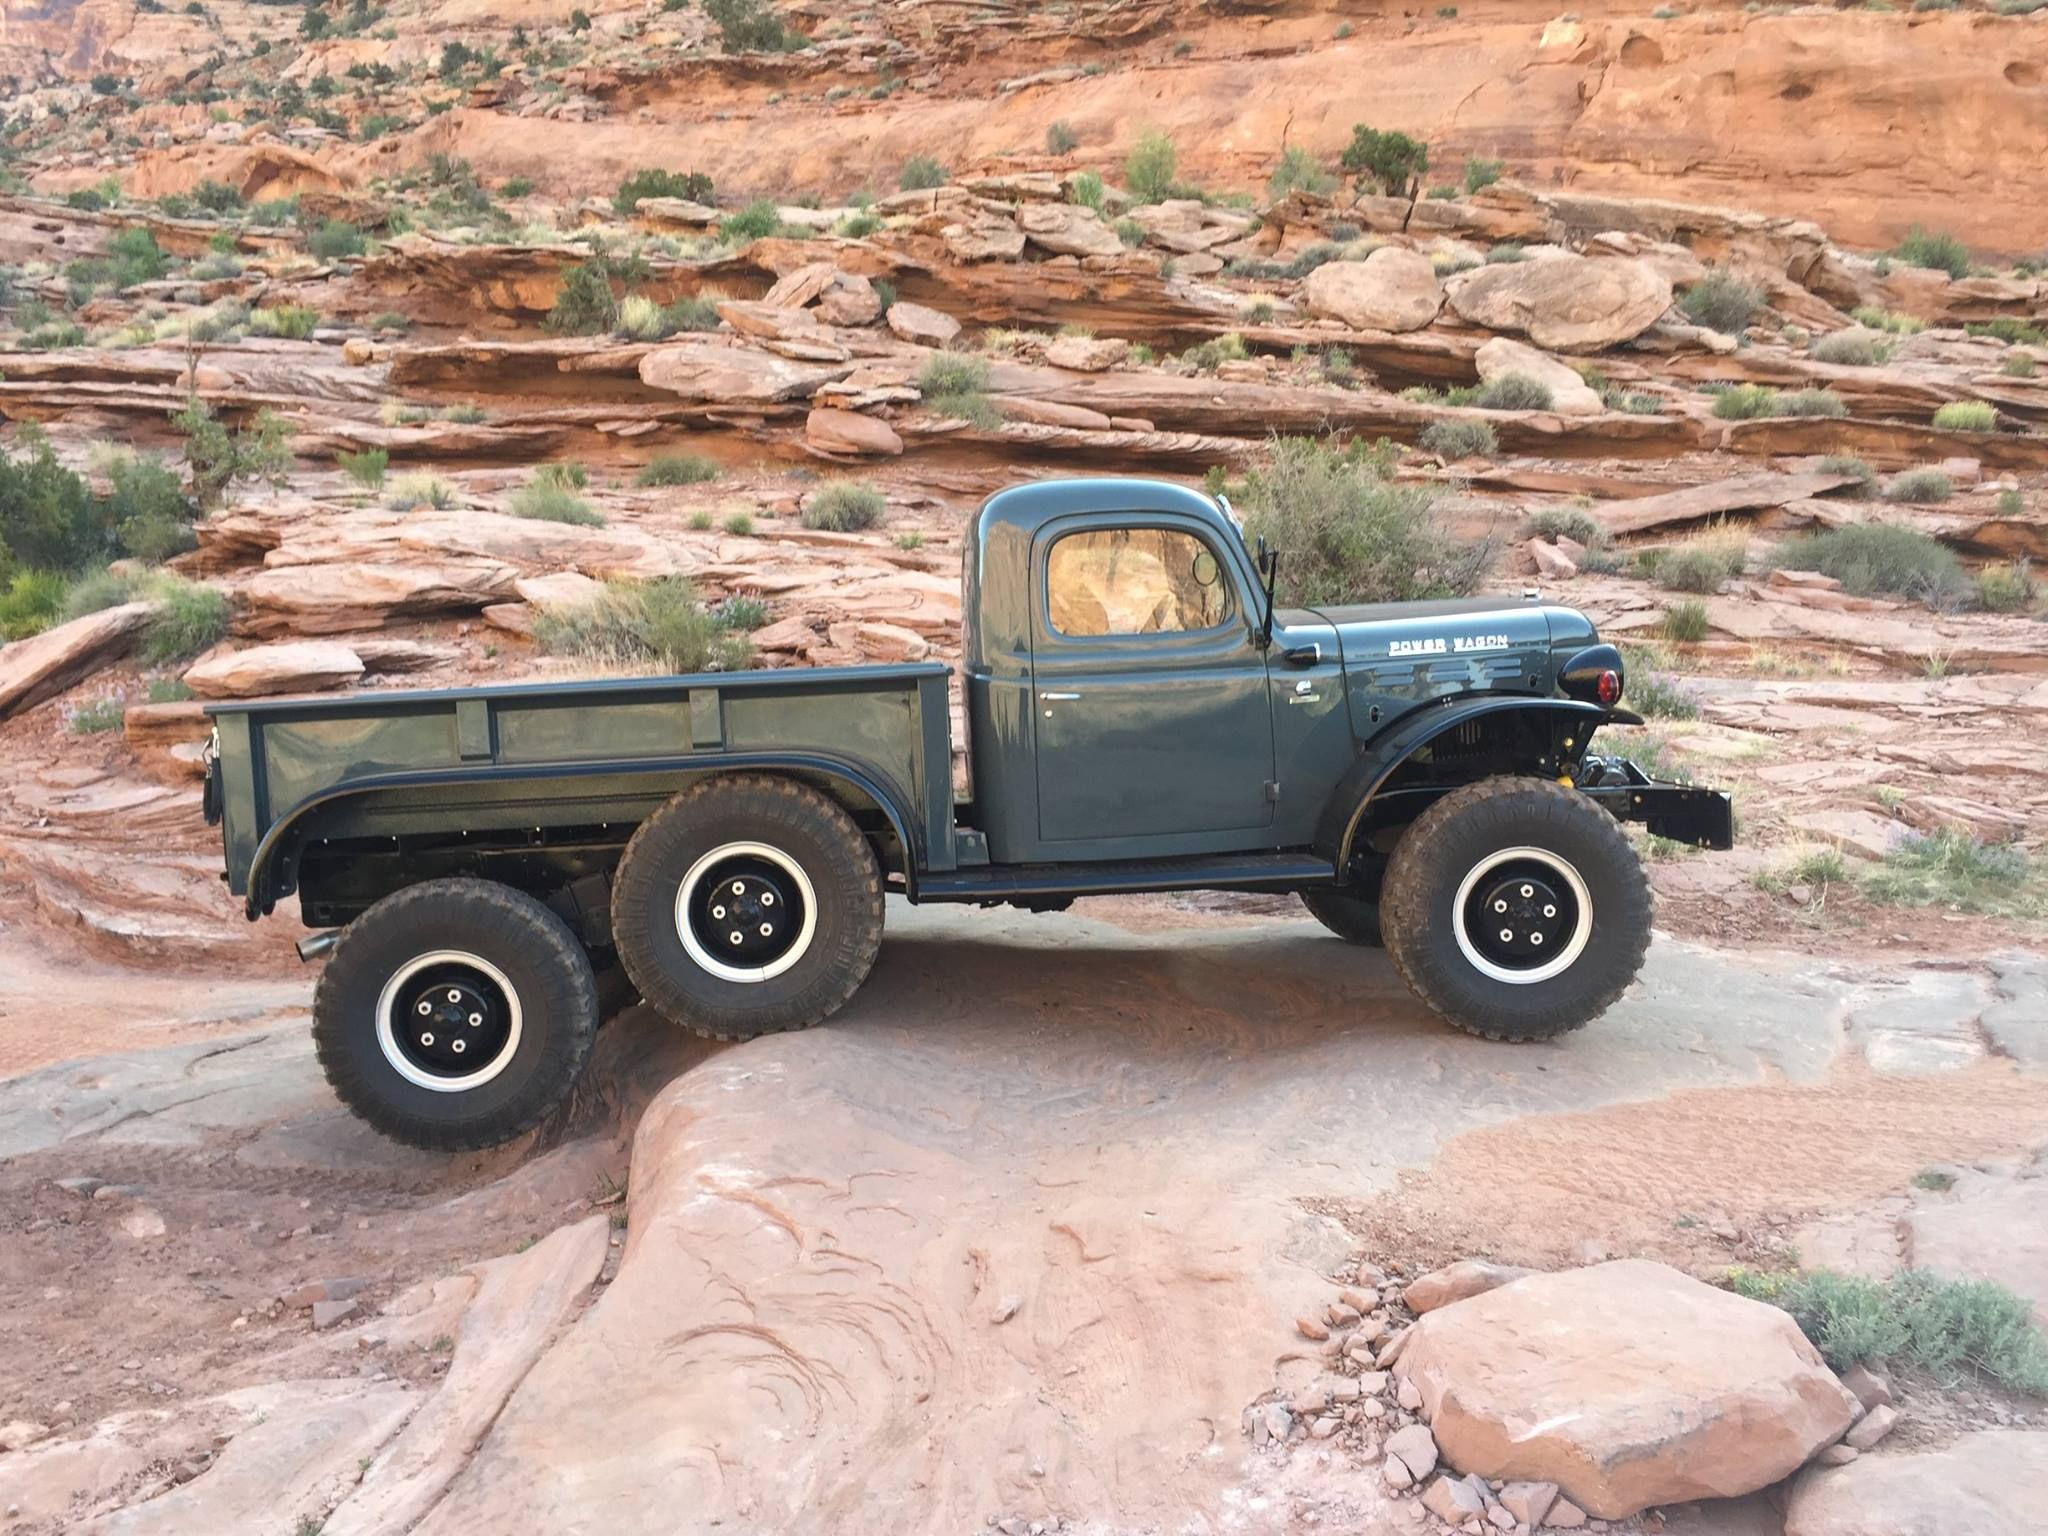 small resolution of 1942 dodge power wagon wc63 maintenance restoration of old vintage vehicles the material for new cogs casters gears pads could be cast polyamide which i